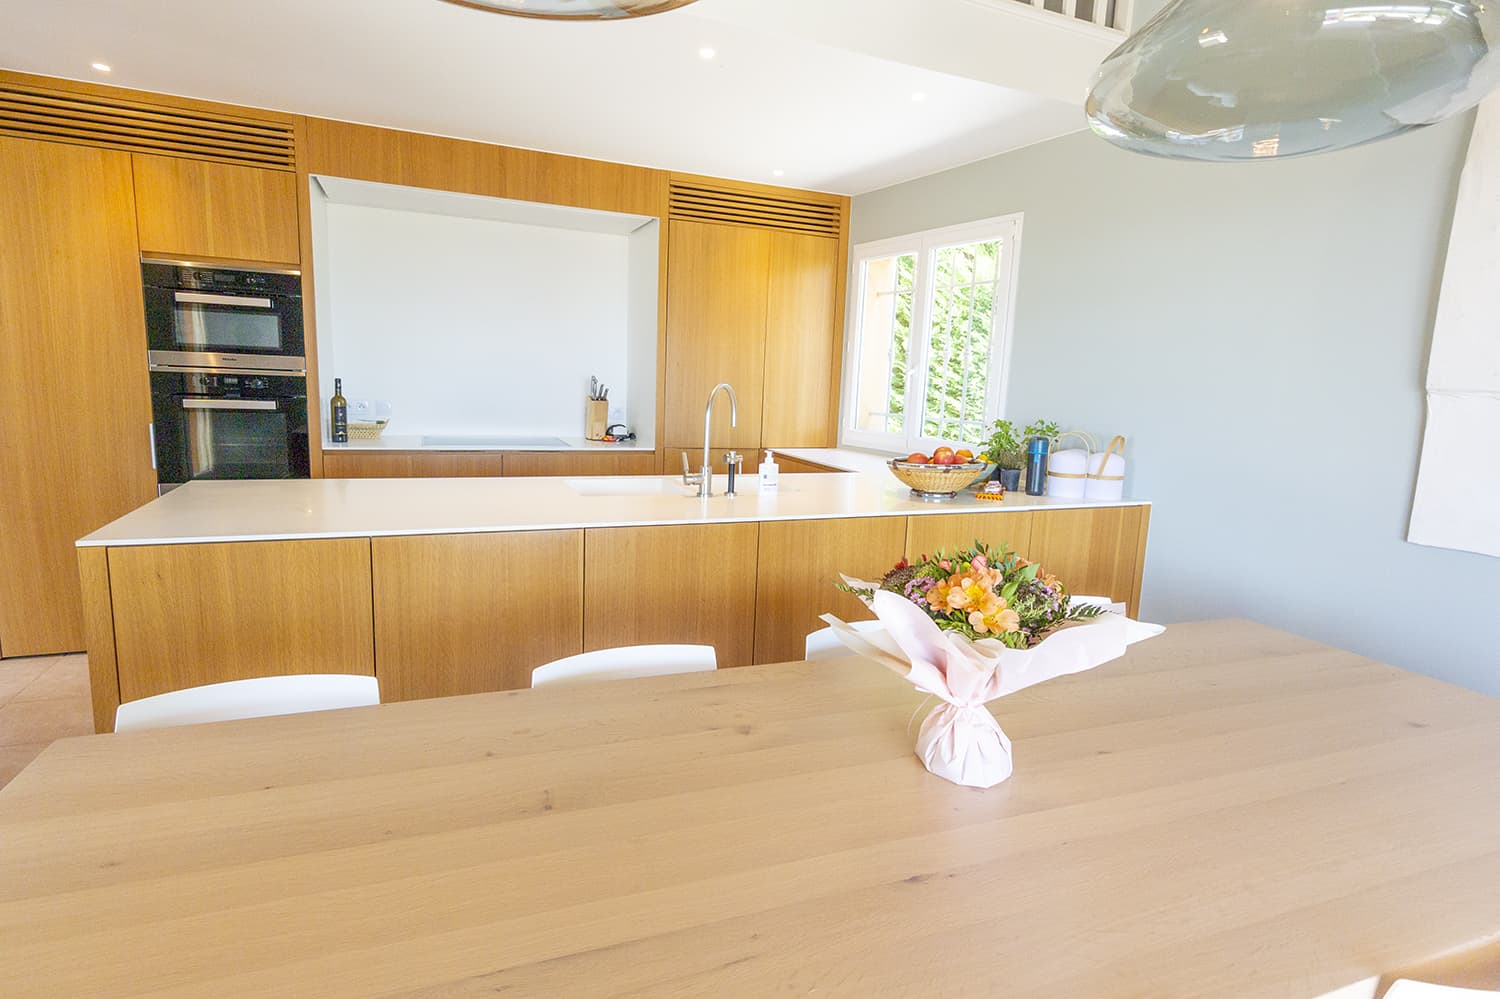 Kitchen and dining area in Sainte-Maxime holiday rental villa